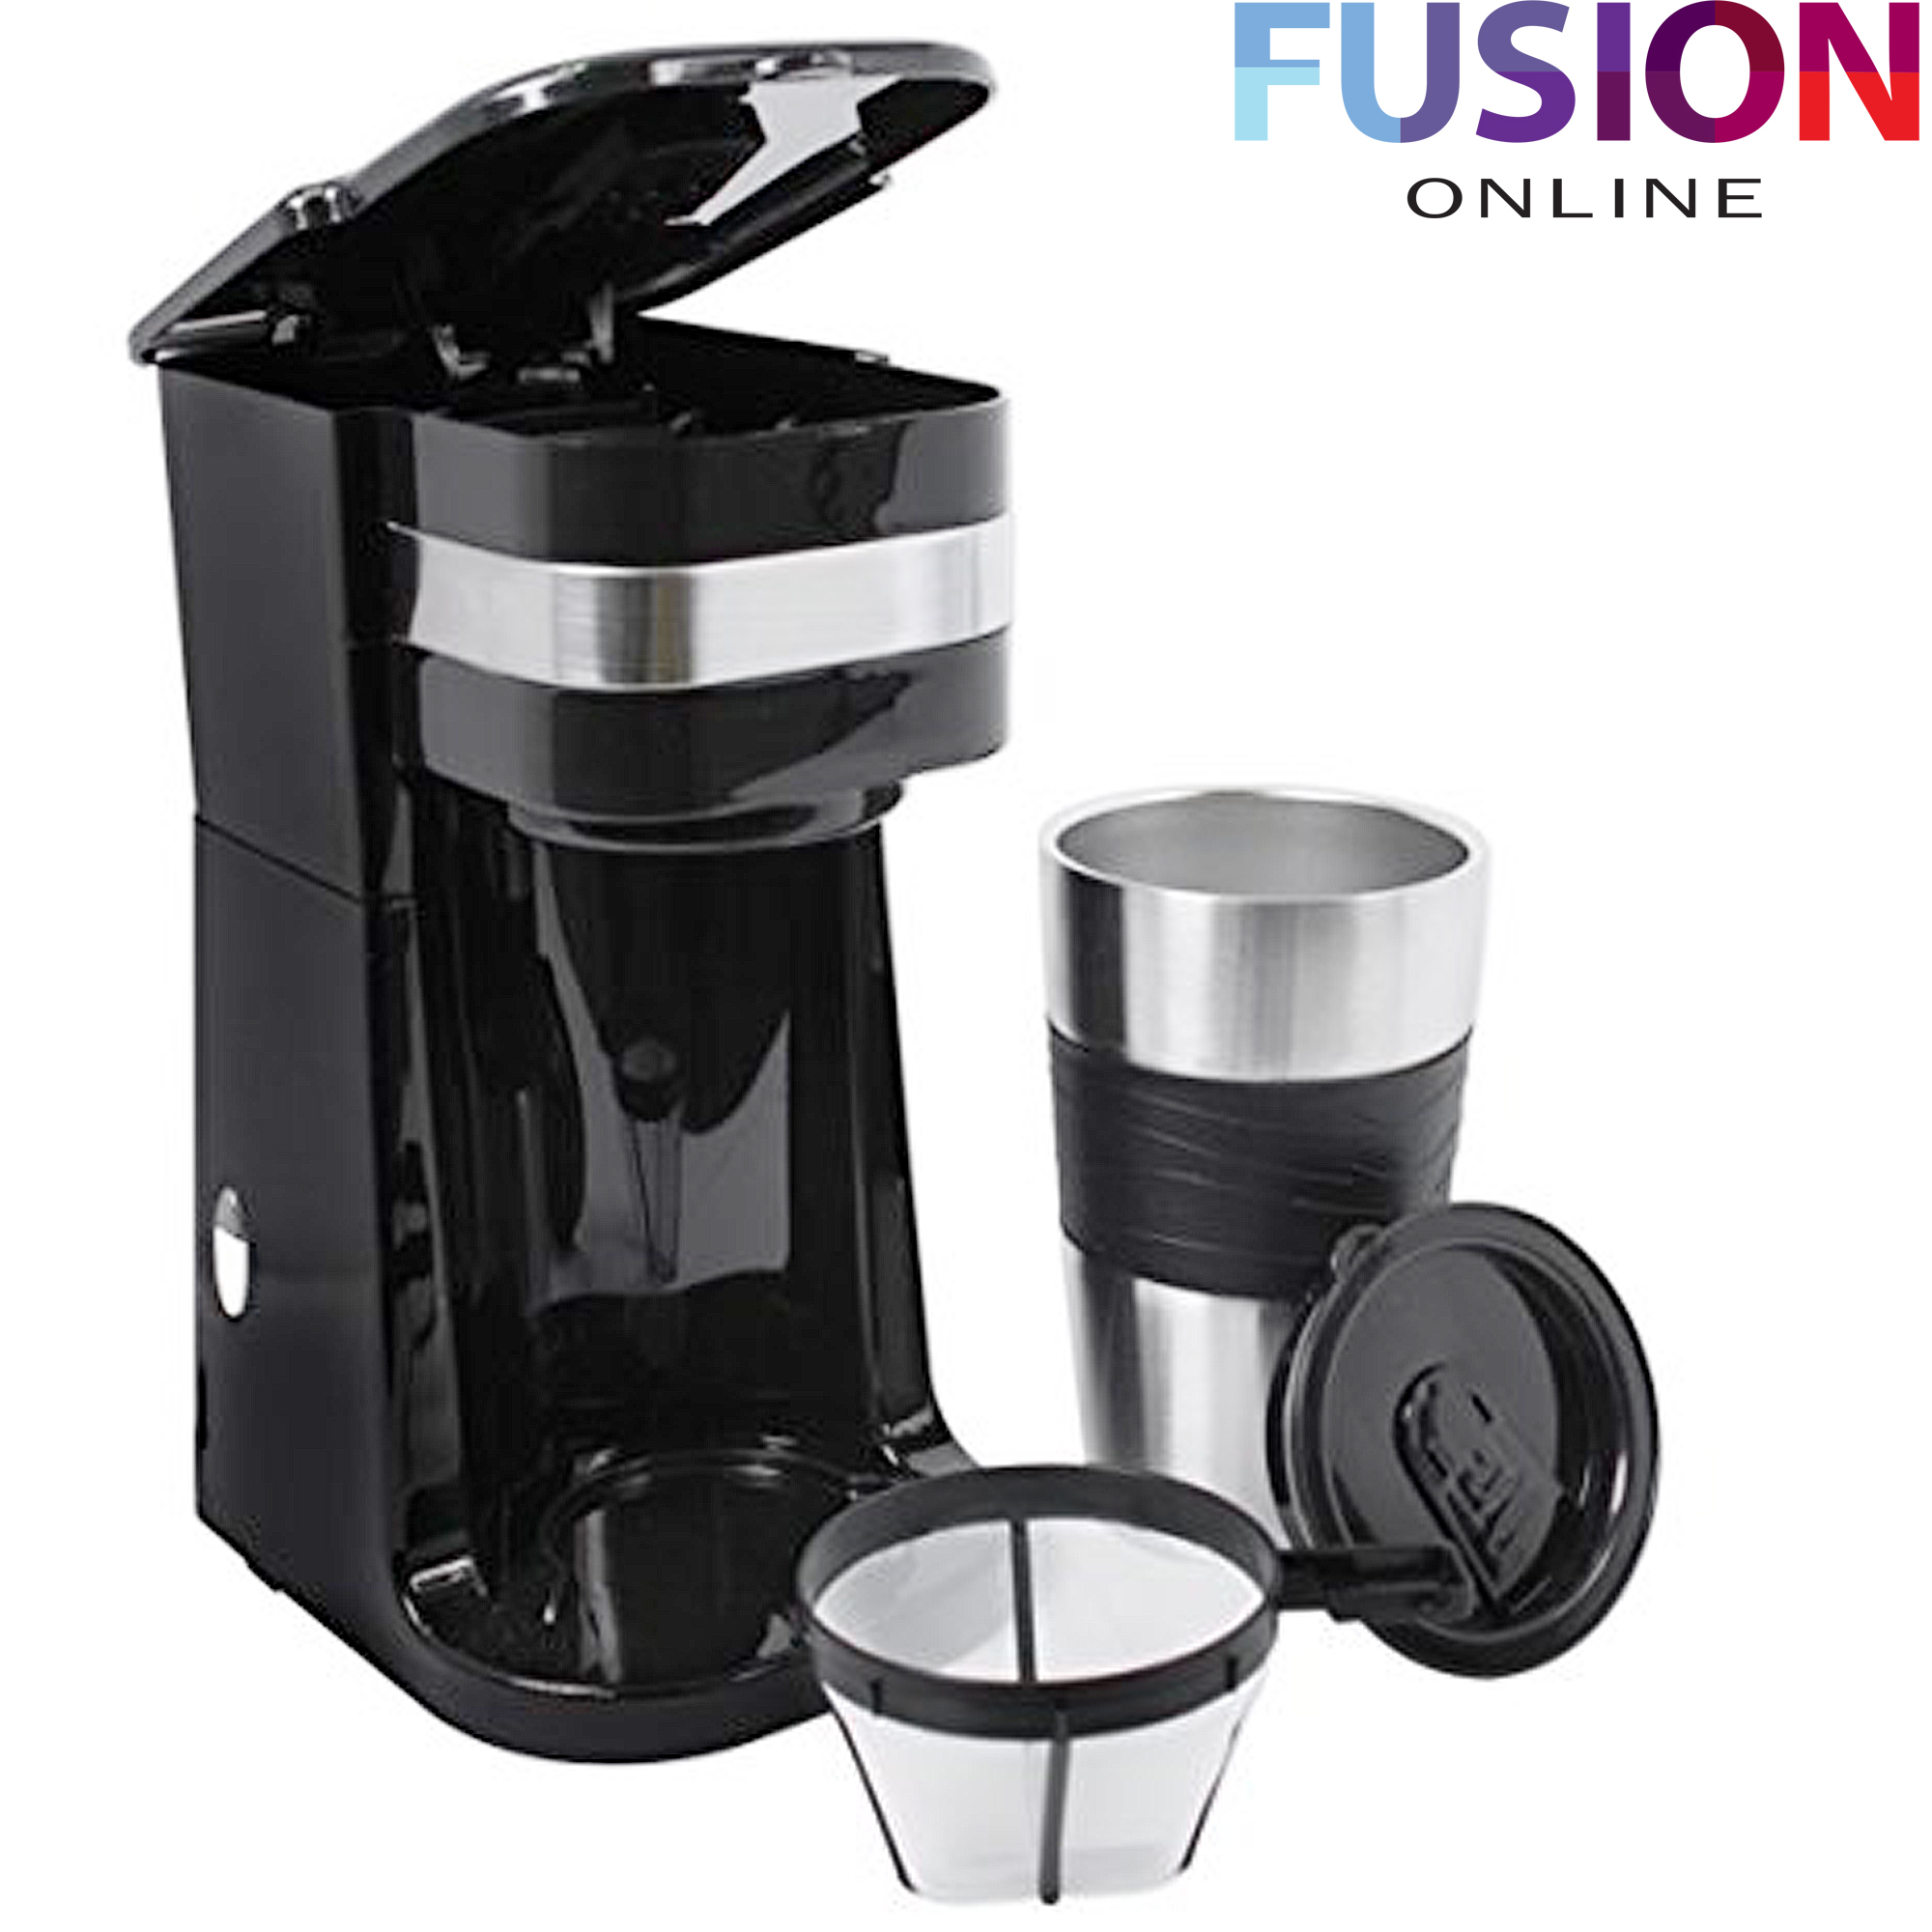 Coffee Maker That Fits Travel Mug : COFFEE MAKER MACHINE WITH THERMAL TRAVEL MUG PORTABLE 700W HOT CHOCOLATE COFEE eBay